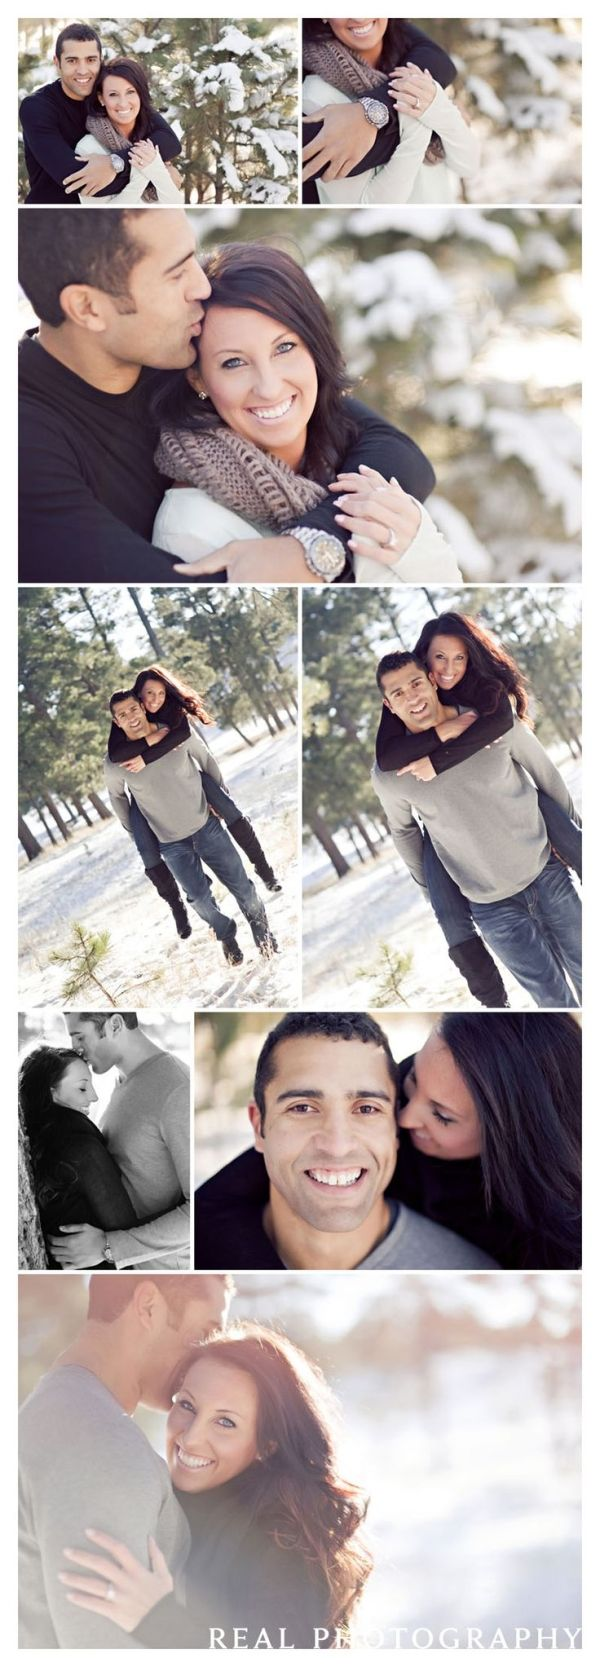 winter engagement portrait shoot snow couple photo ideas by margarita